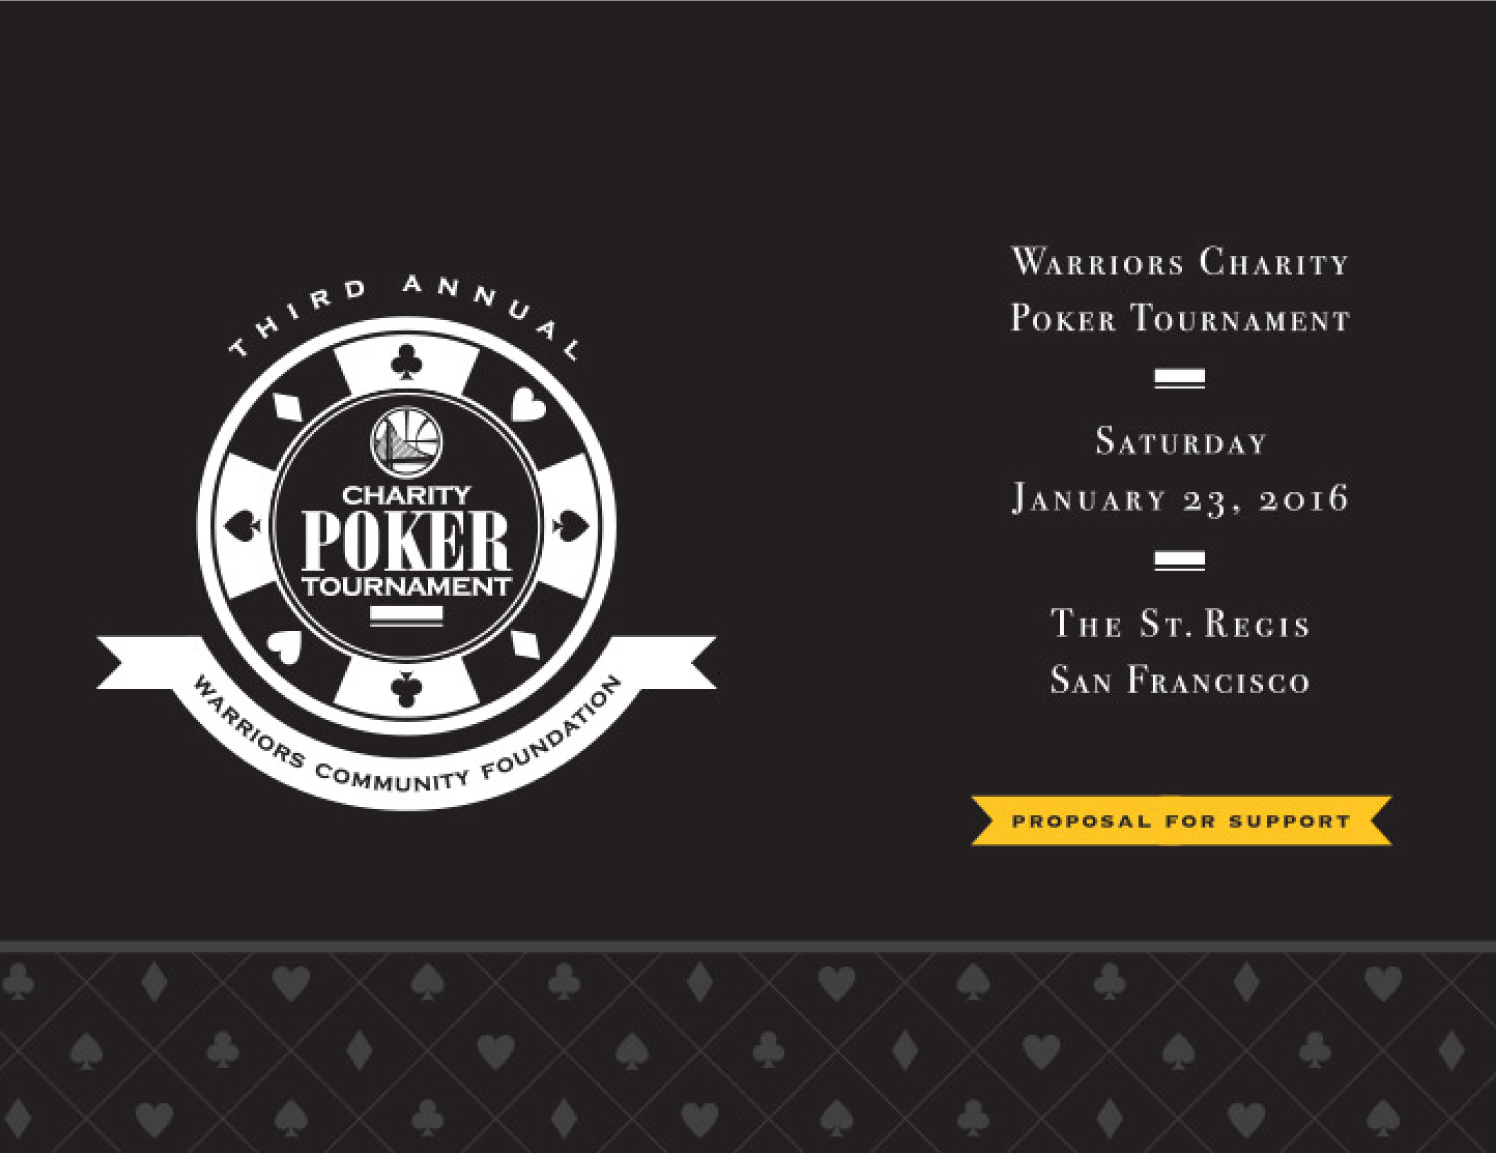 warriors charity poker logo